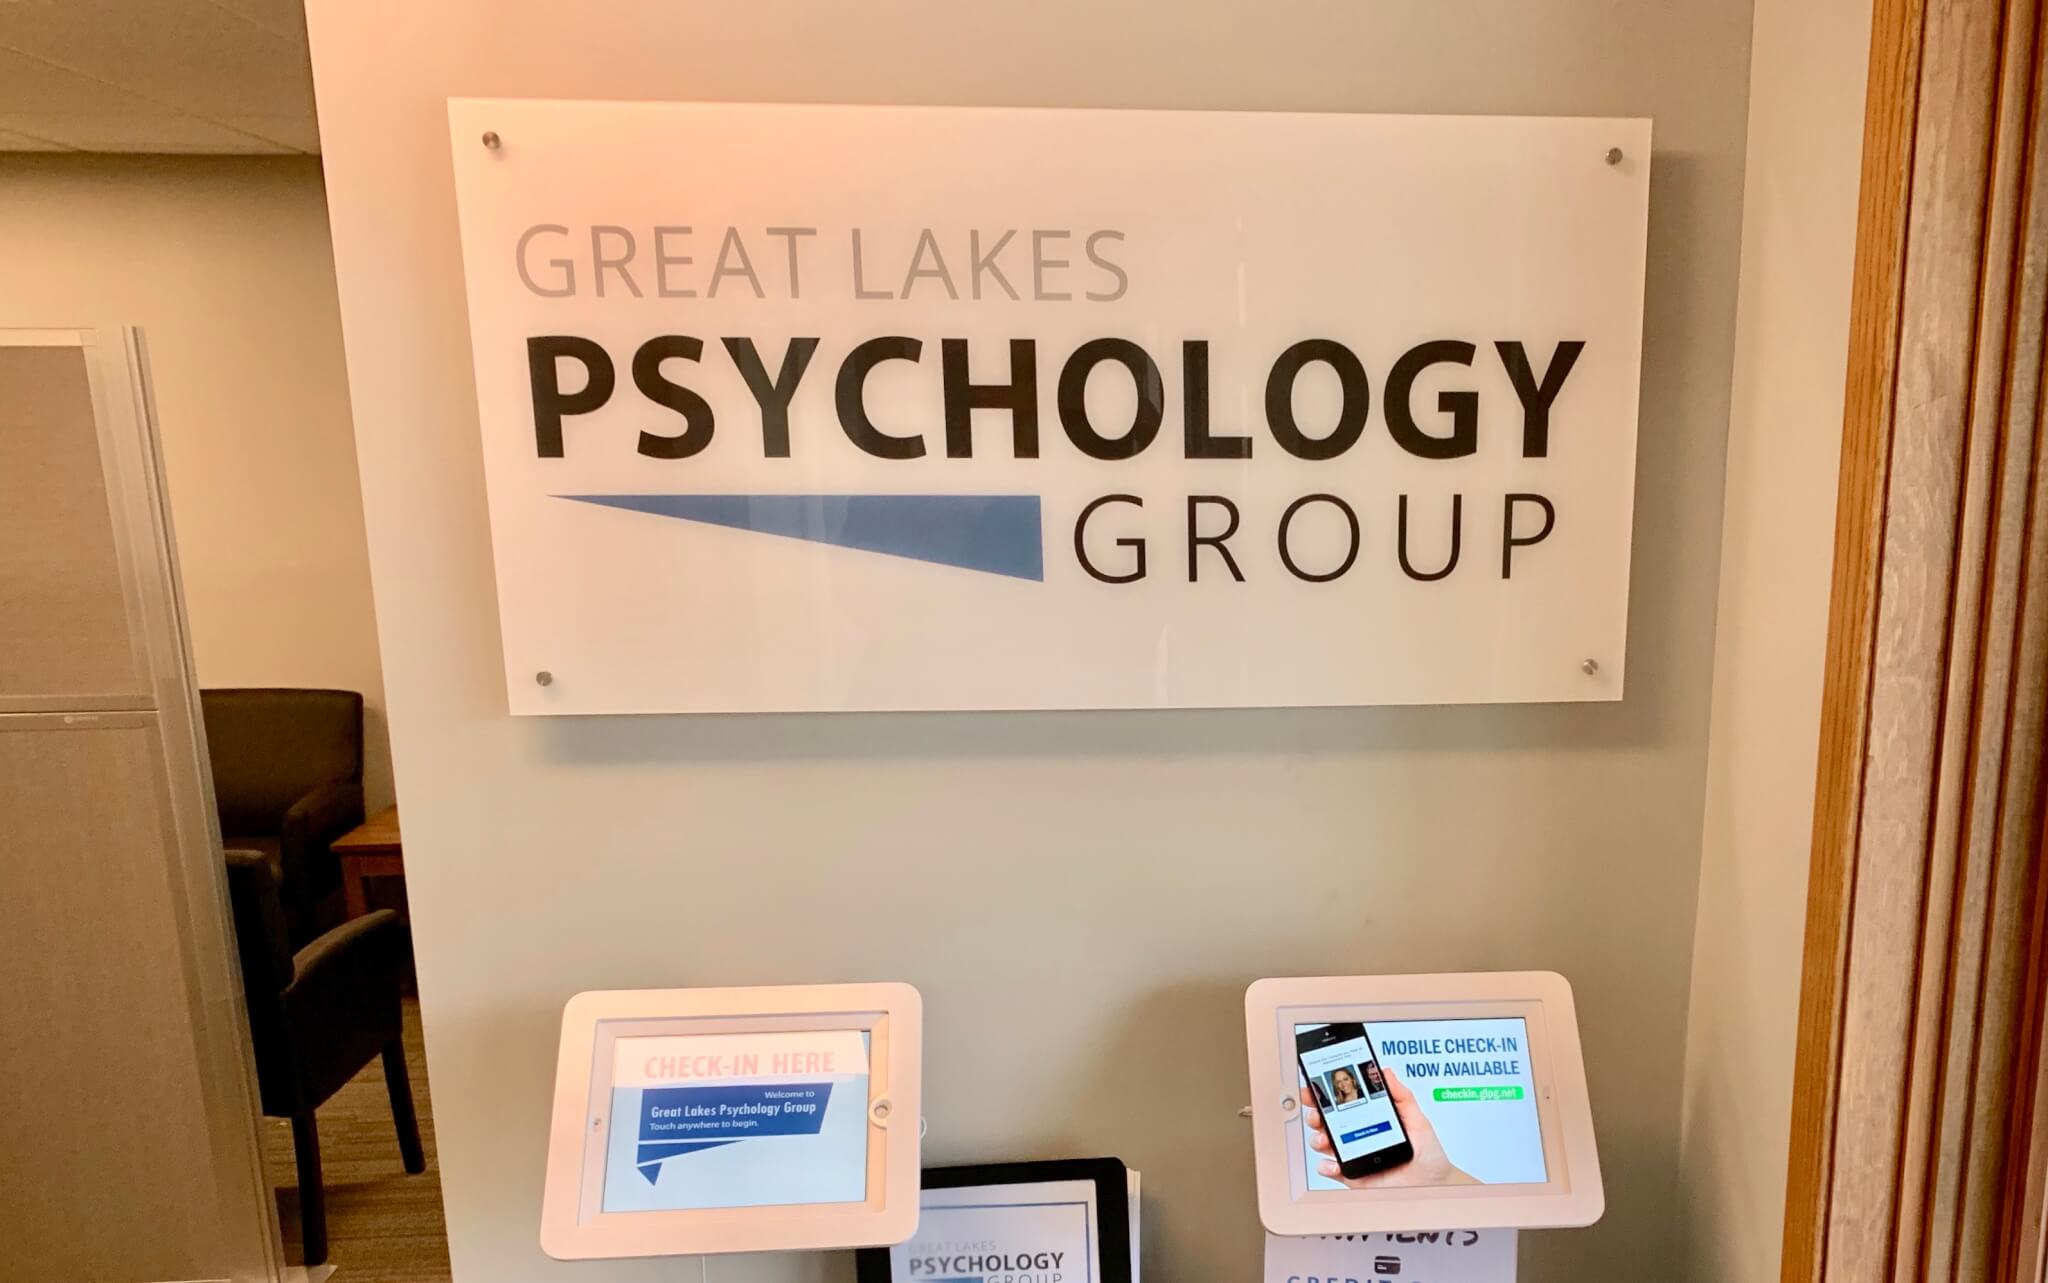 Great Lakes Psychology Group Glpg Okemos Kiosk